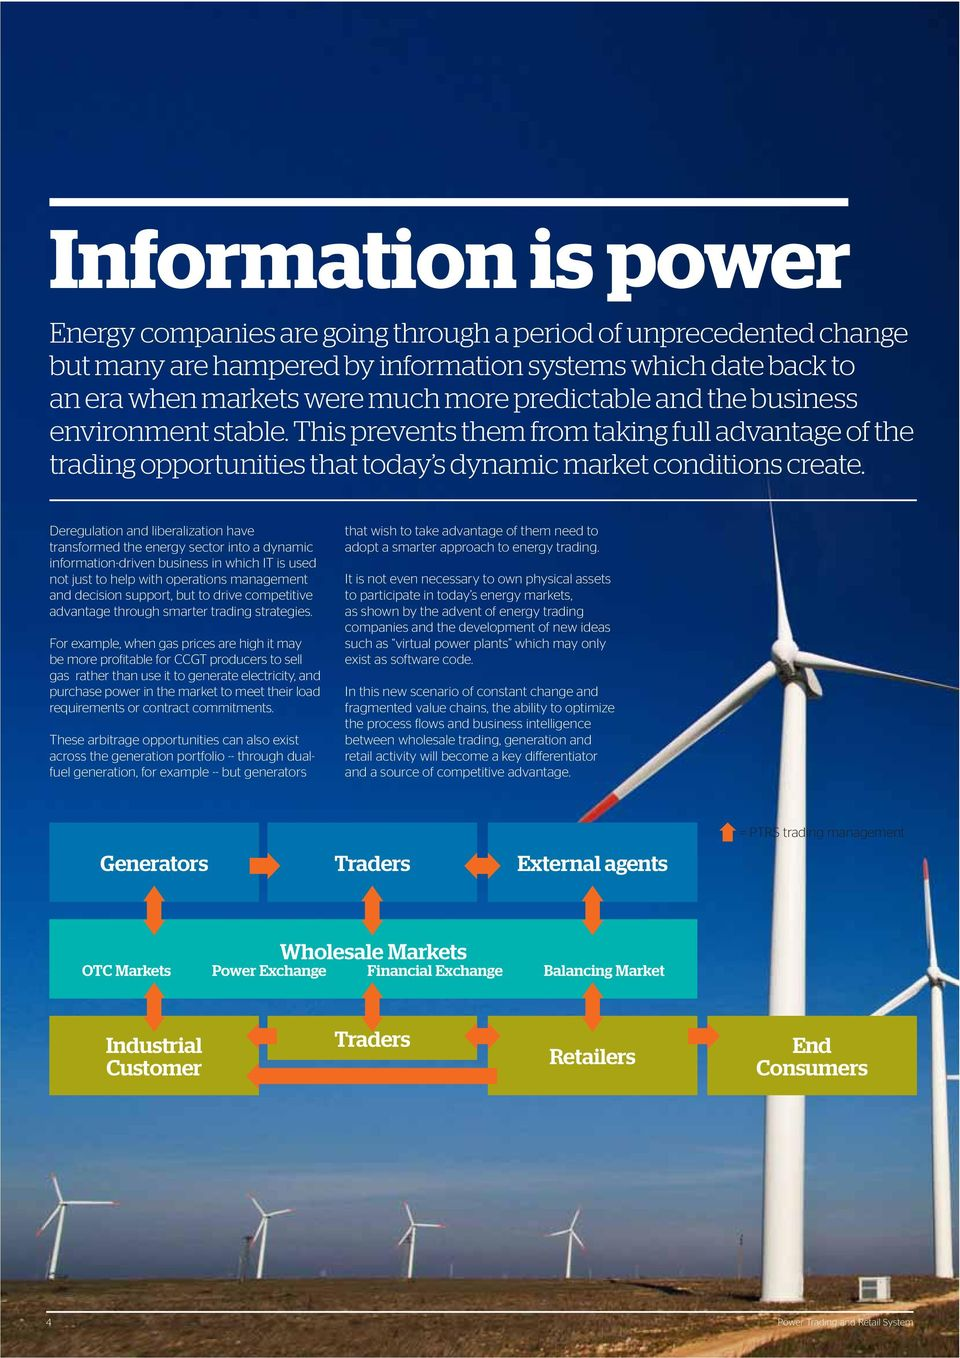 Deregulation and liberalization have transformed the energy sector into a dynamic information-driven business in which IT is used not just to help with operations management and decision support, but